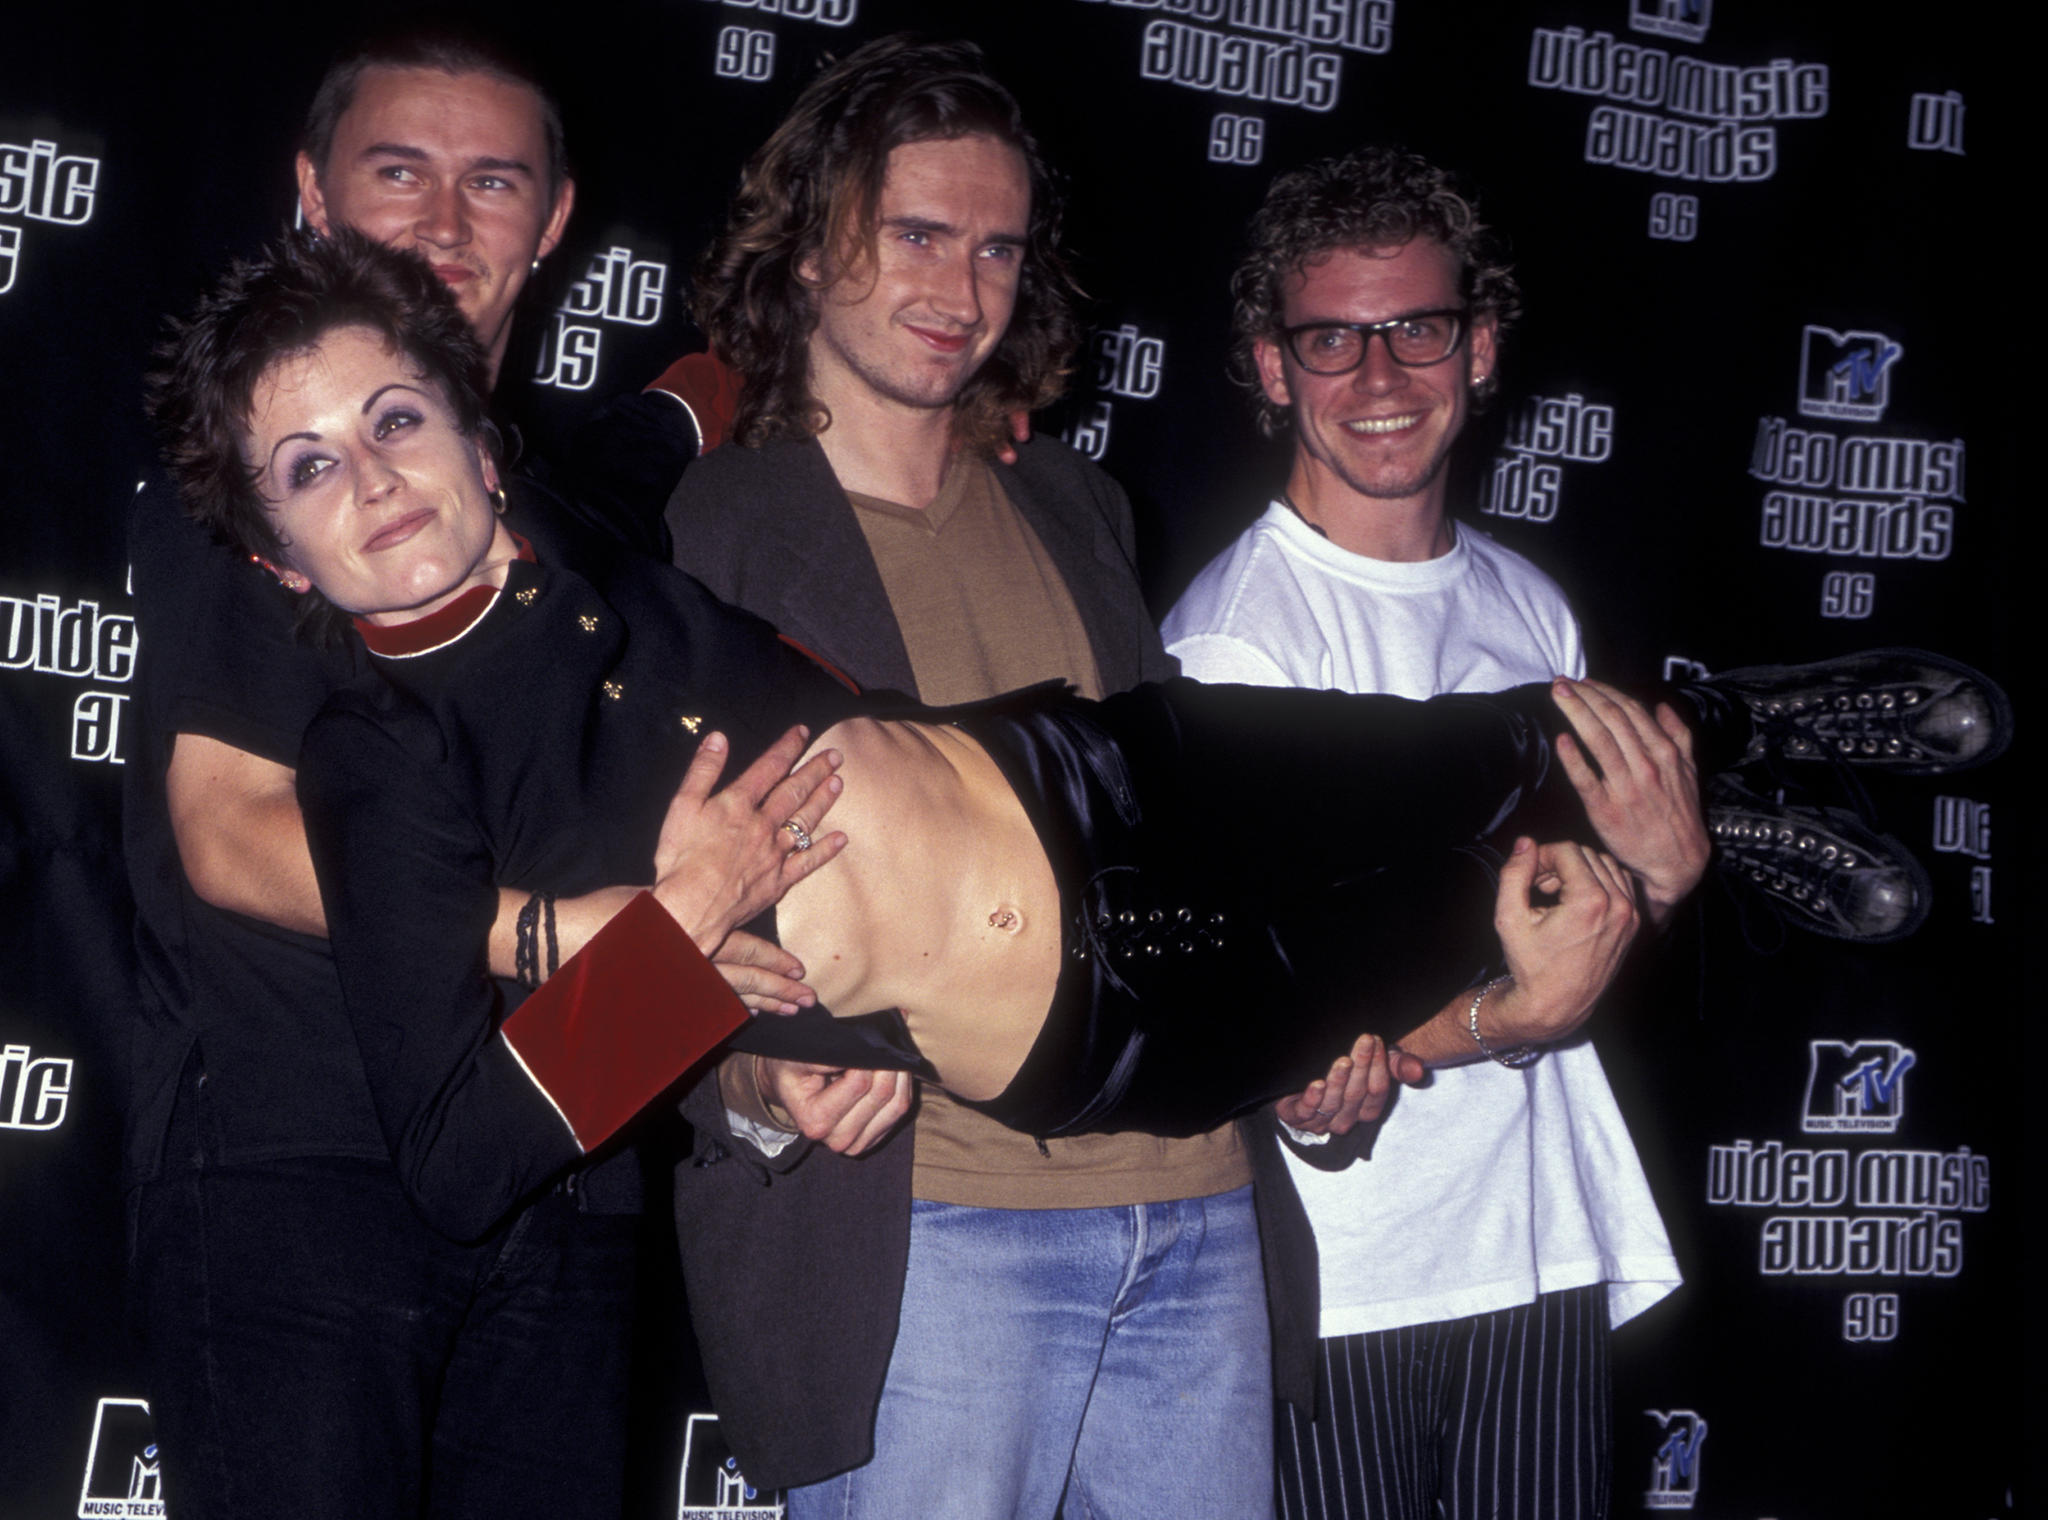 Dolores O'Riordan und die Cranberries bei den MTV Video Music Awards 1996 in New York City